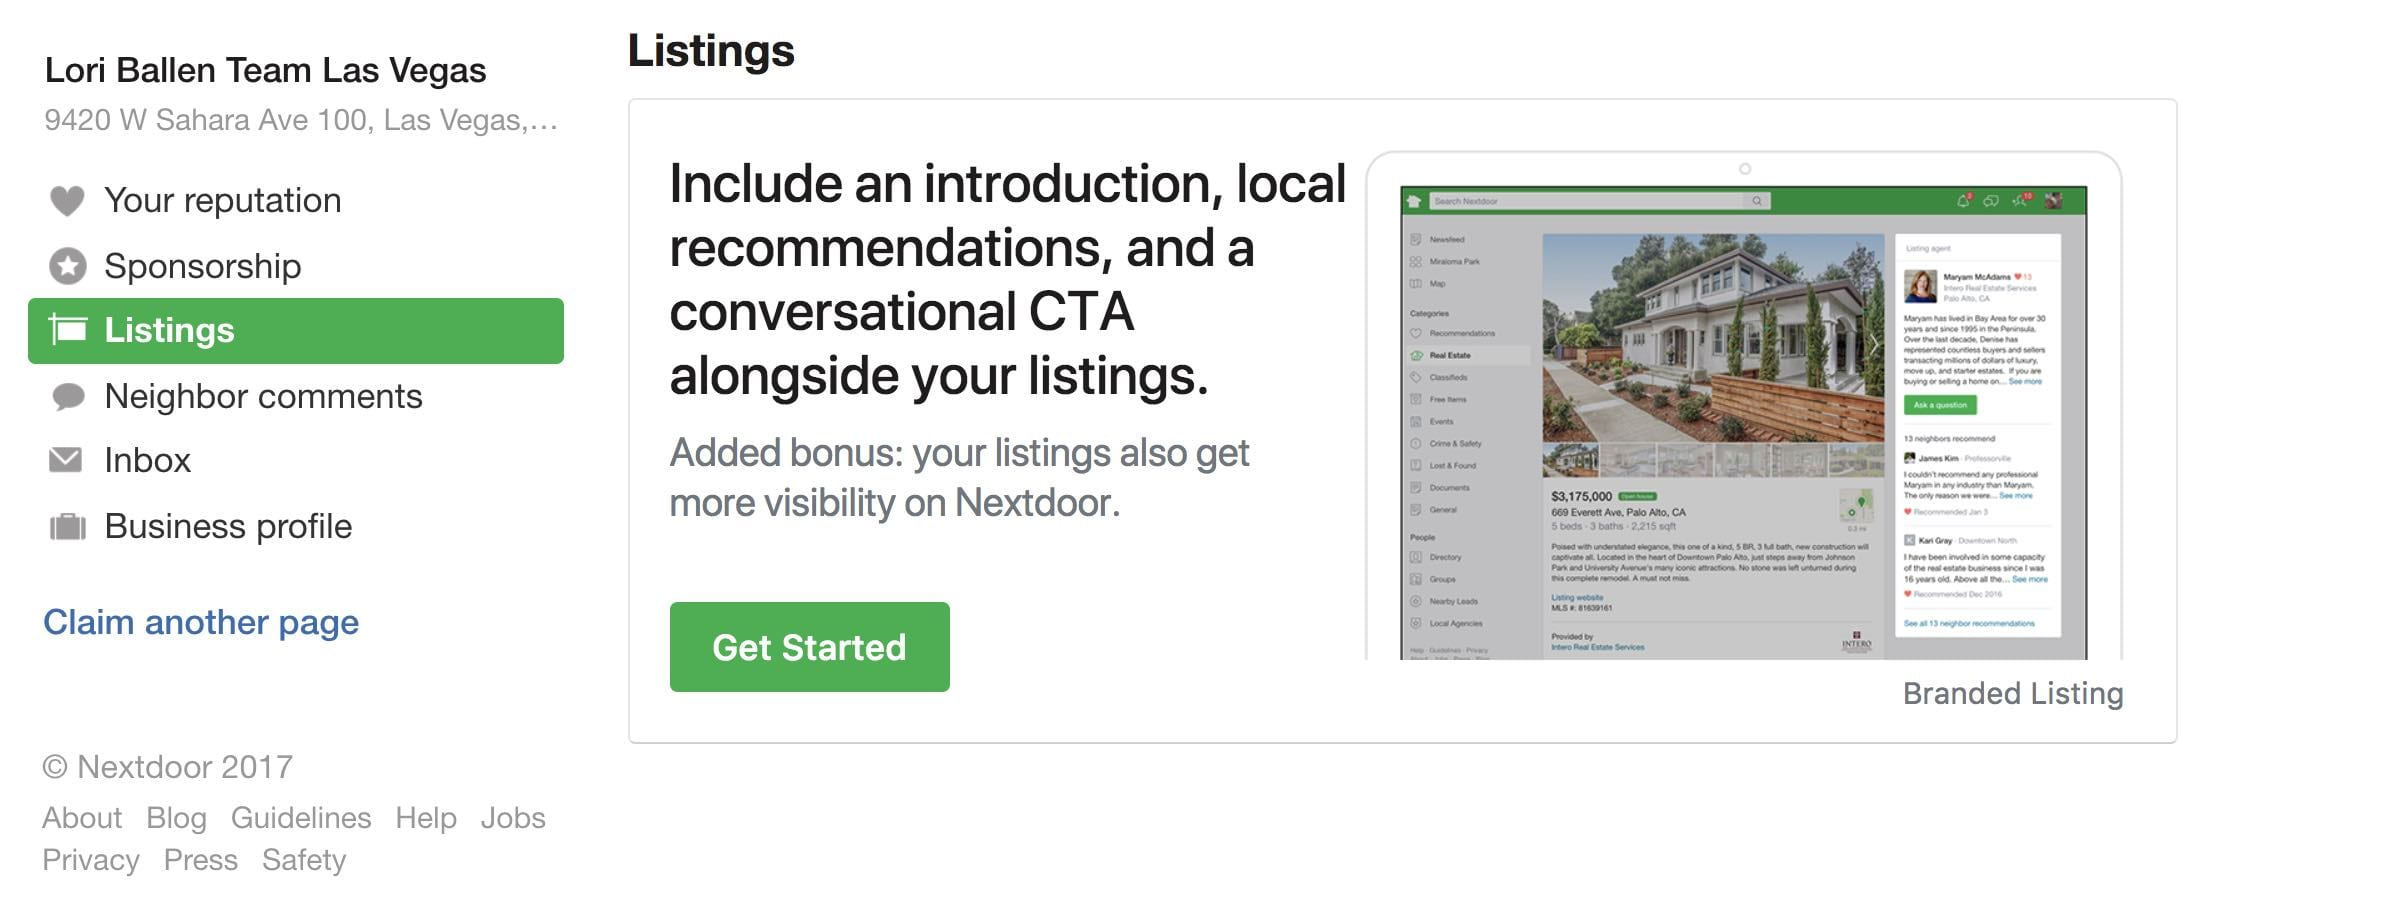 Promo Box for marketing a real estate listing on nextdoor